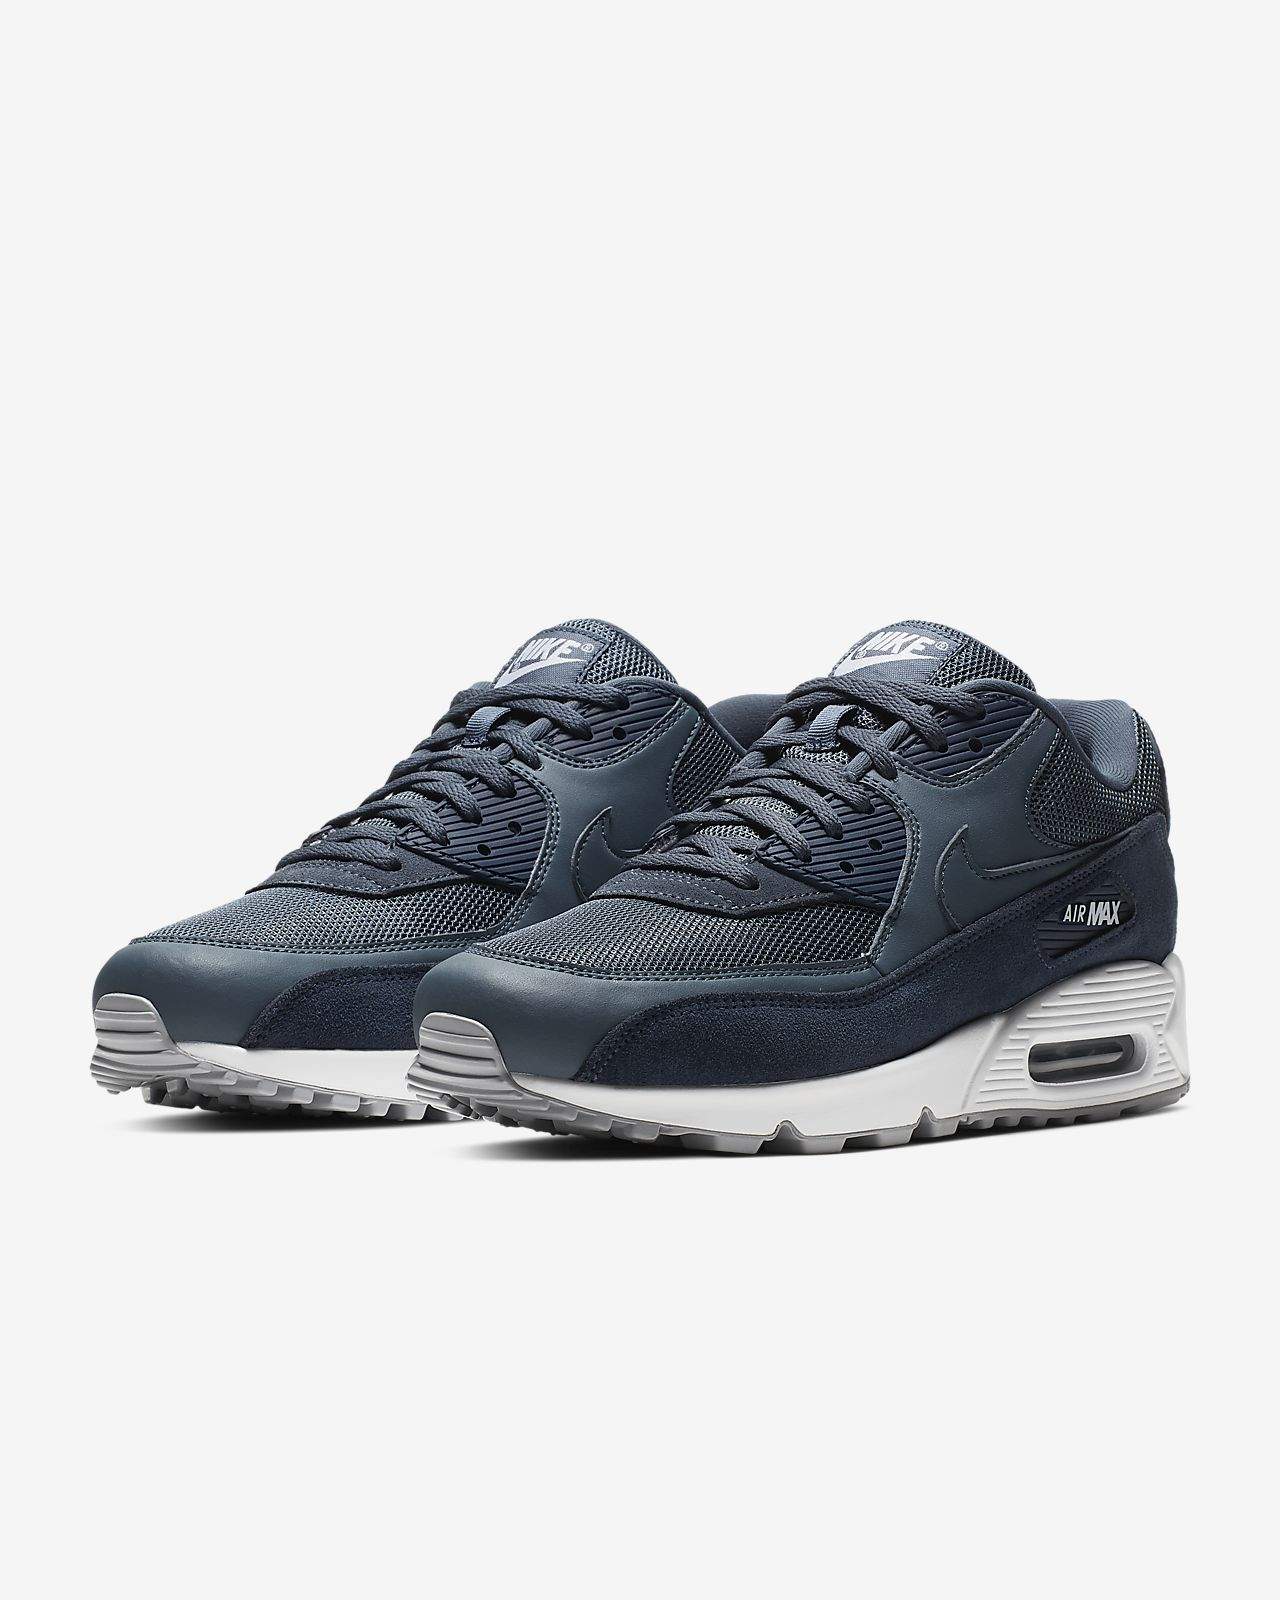 230e7ed83a2 Nike Air Max 90 Essential Men's Shoe